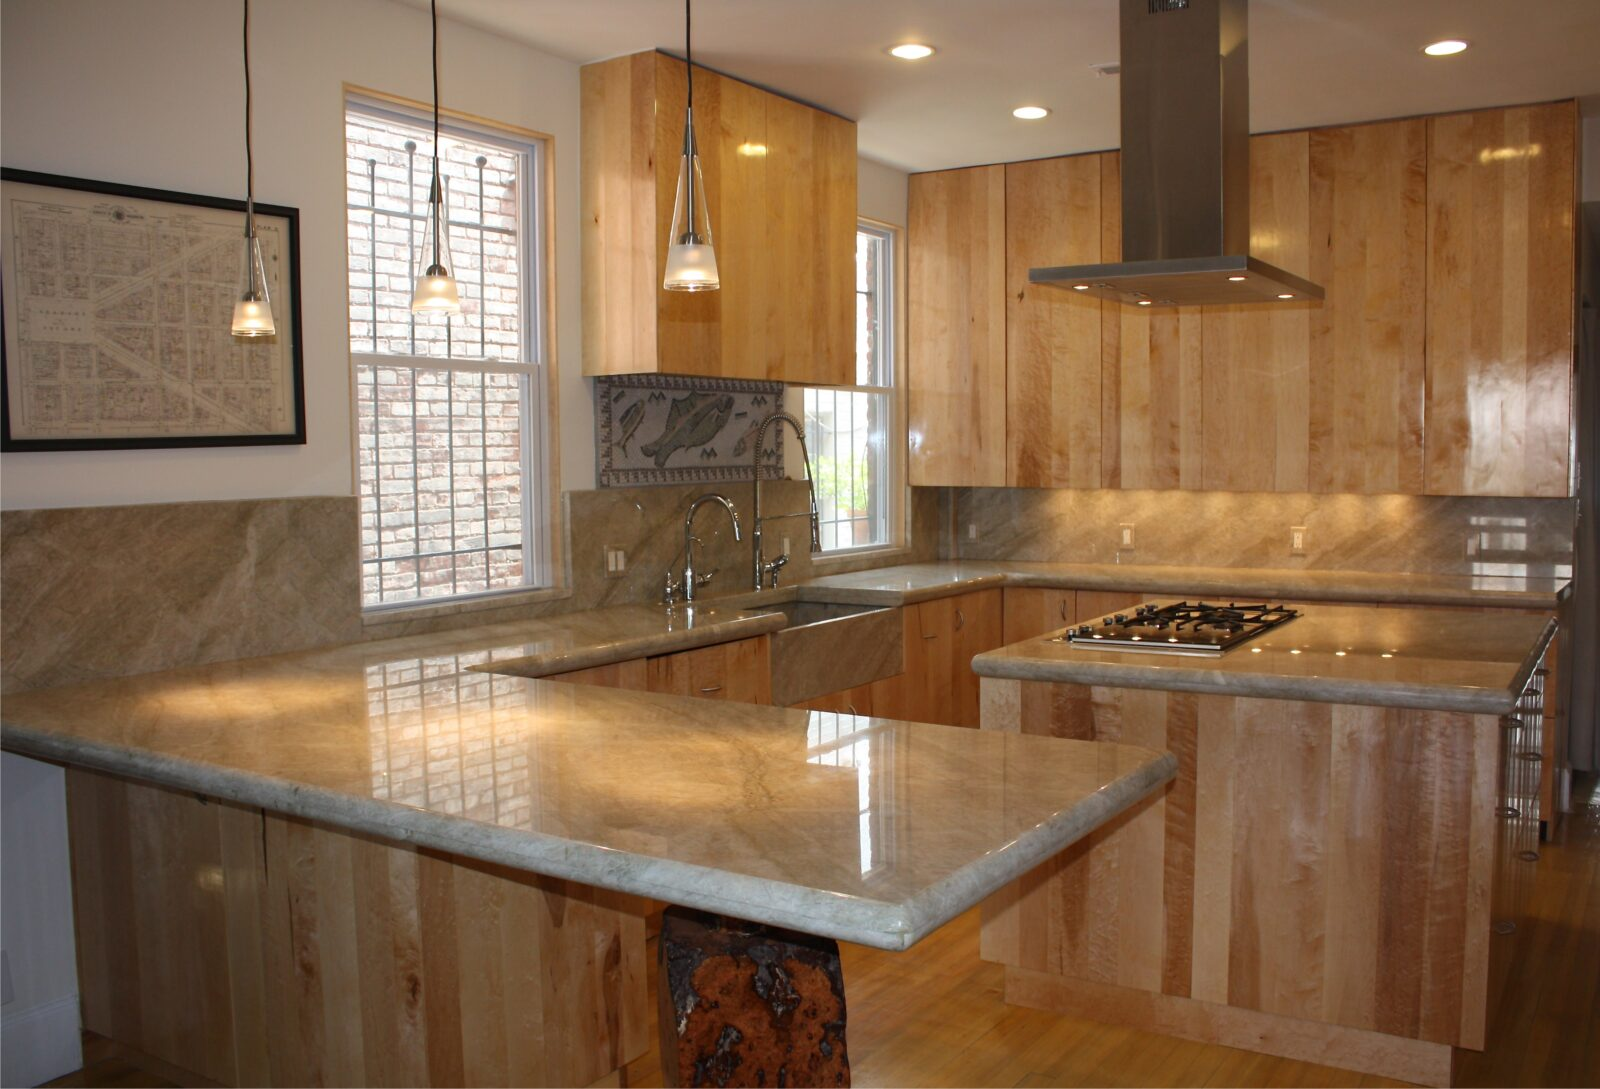 countertops resurfacing laminate resurface granite countertop can refinish refinishing you transformations kitchen